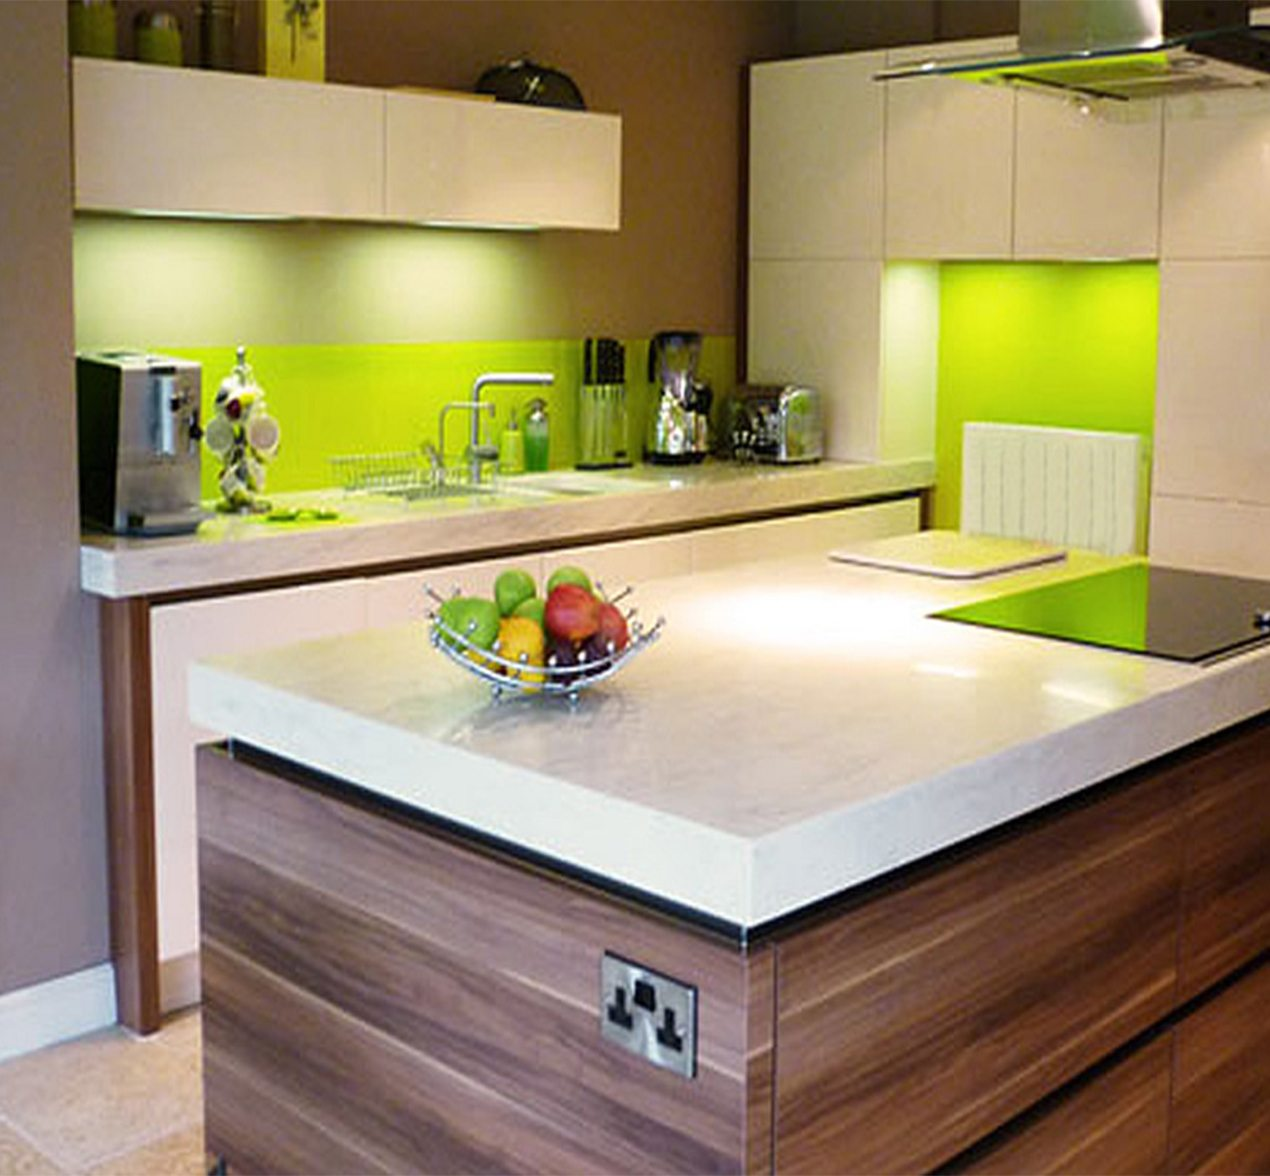 An incredible kitchen transformation